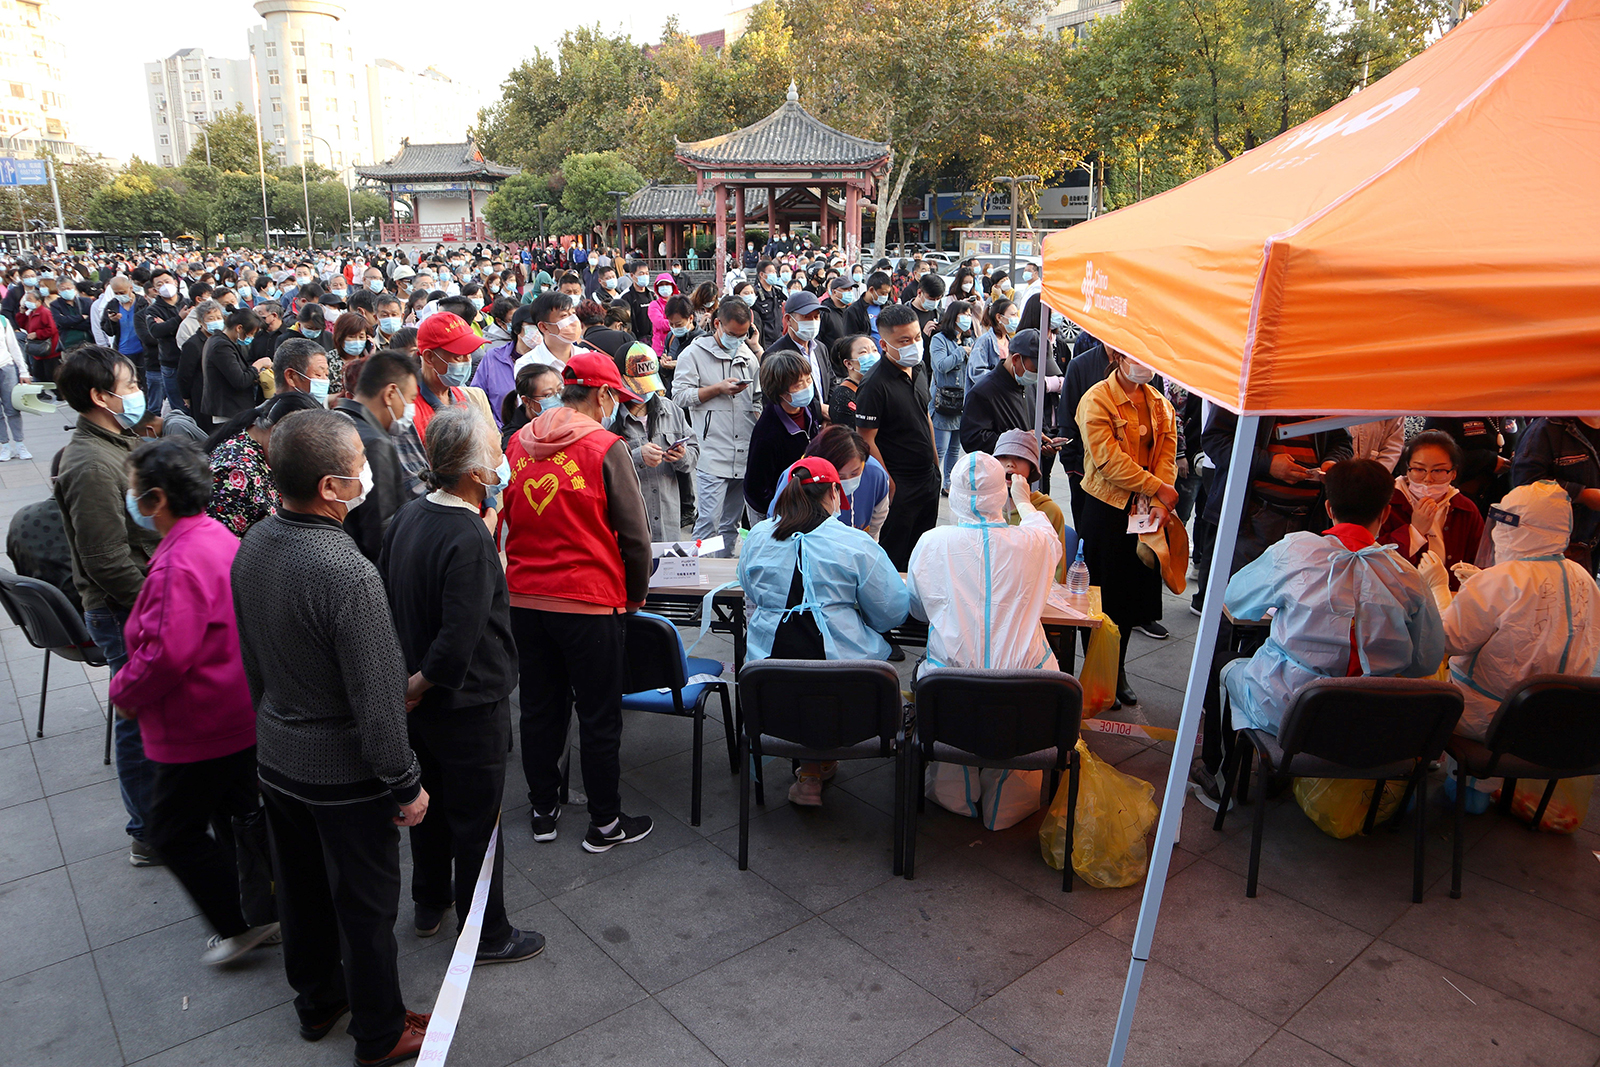 Residents line up to be tested for Covid-19, as part of a mass testing program following a new coronavirus outbreak in Qingdao, in China's eastern Shandong province, on October 12.